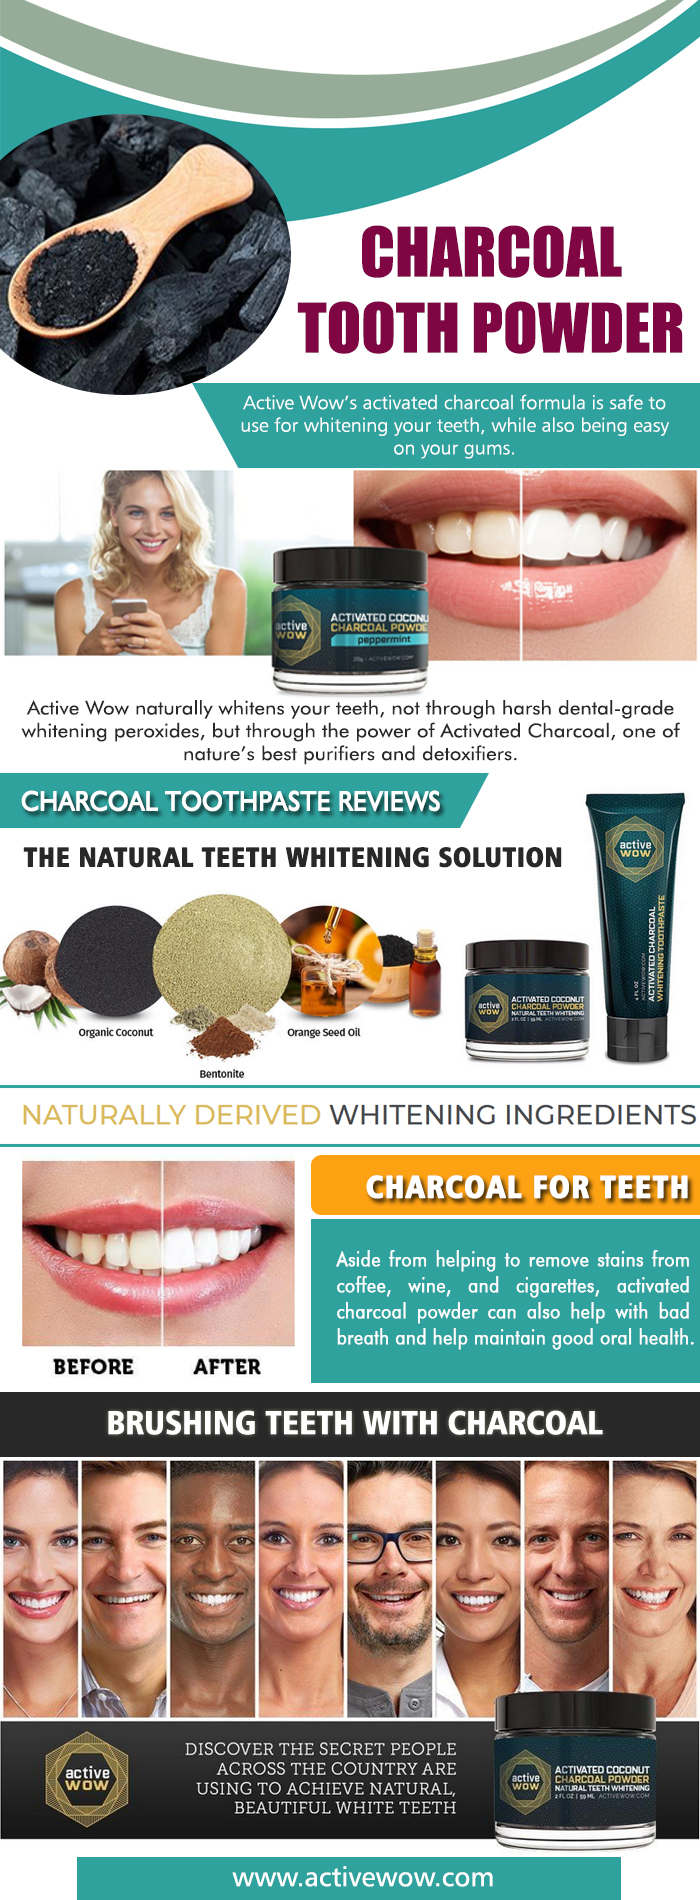 Charcoal teeth whitening review